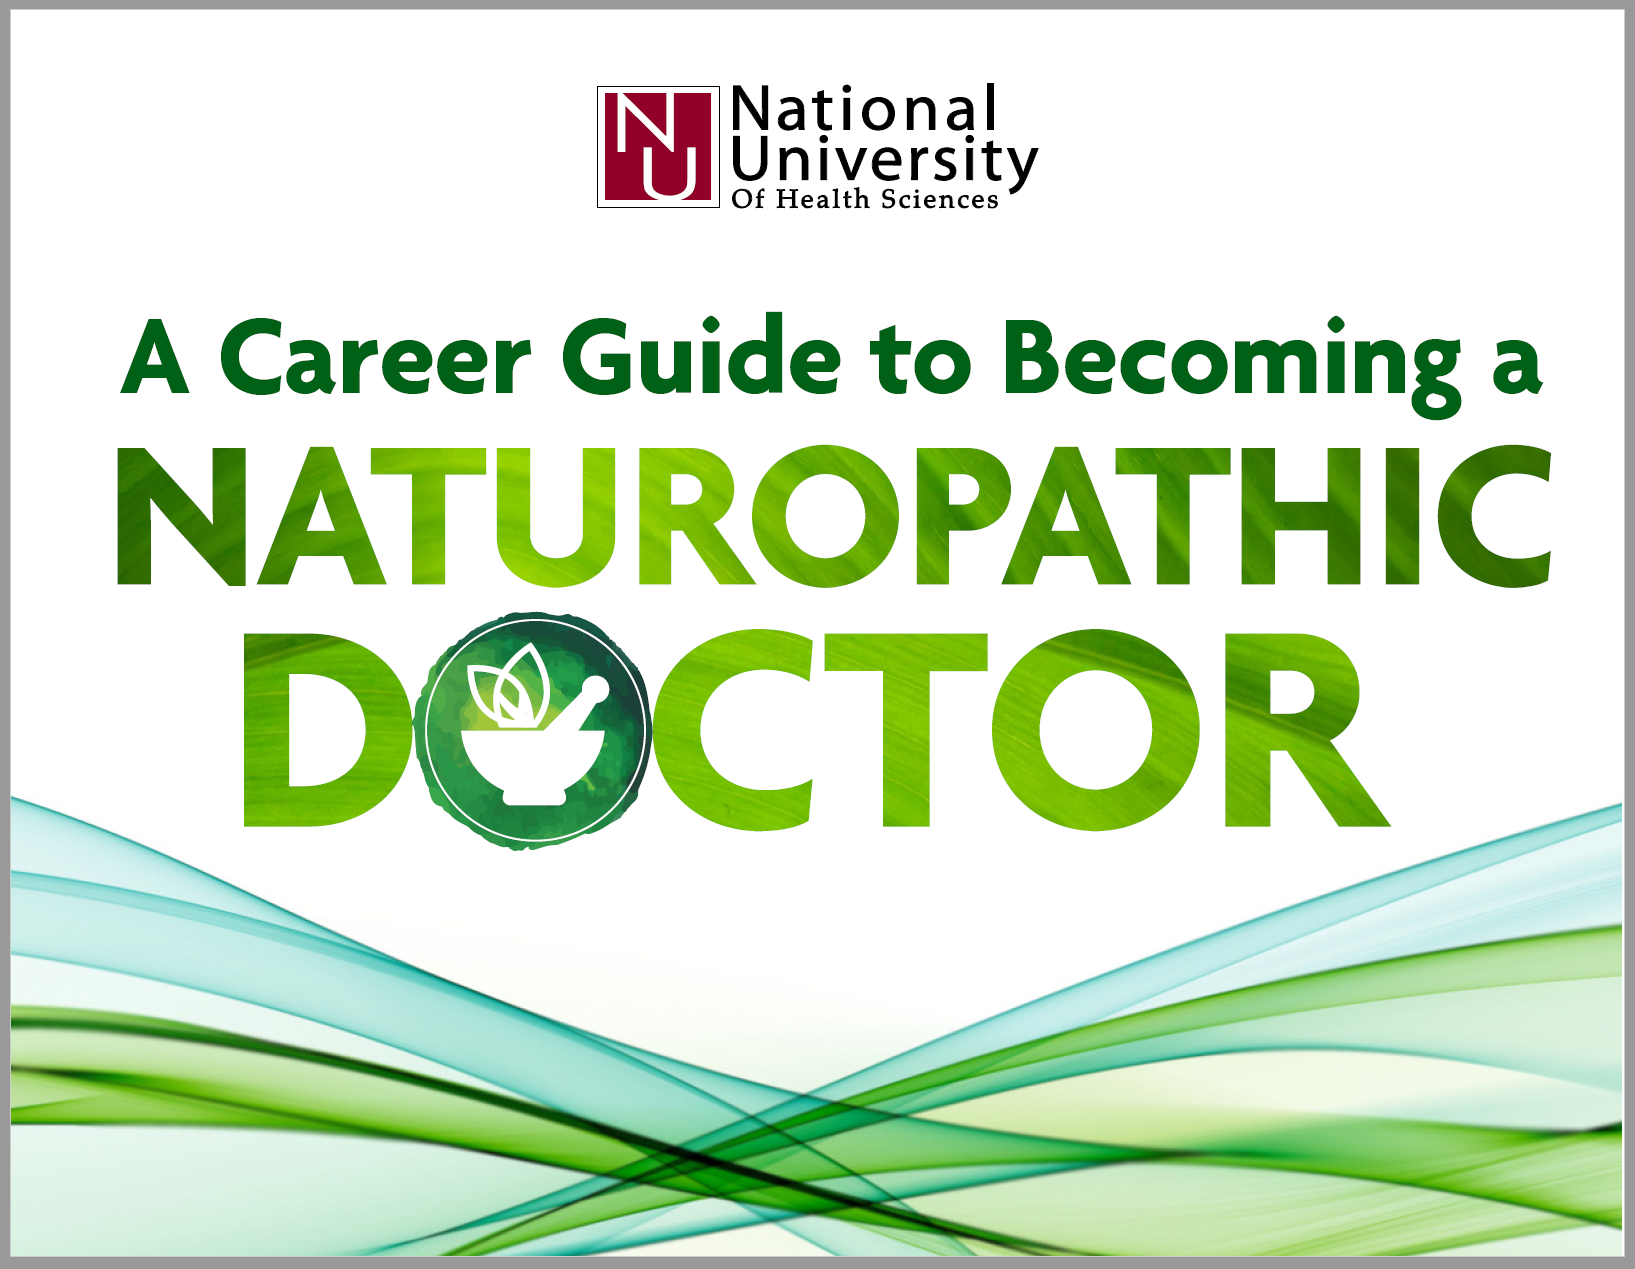 a career guide to naturopathic doctor cover